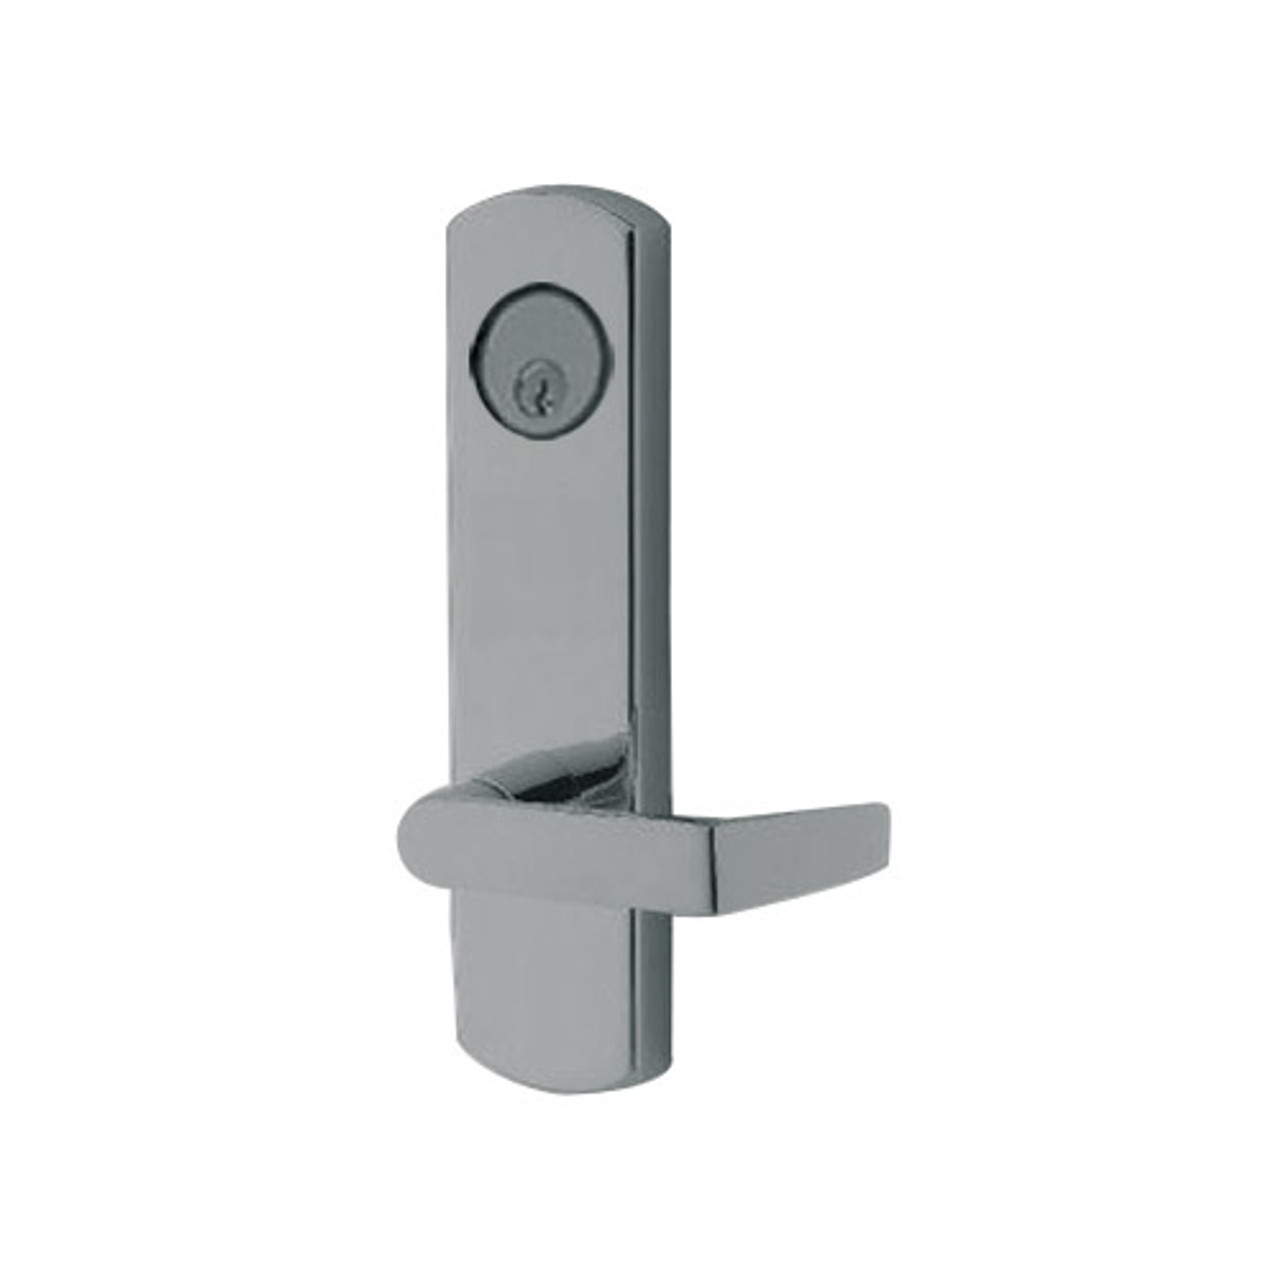 3080E-03-0-9U-50 US32D Adams Rite Electrified Entry Trim with Square Lever in Satin Stainless Finish